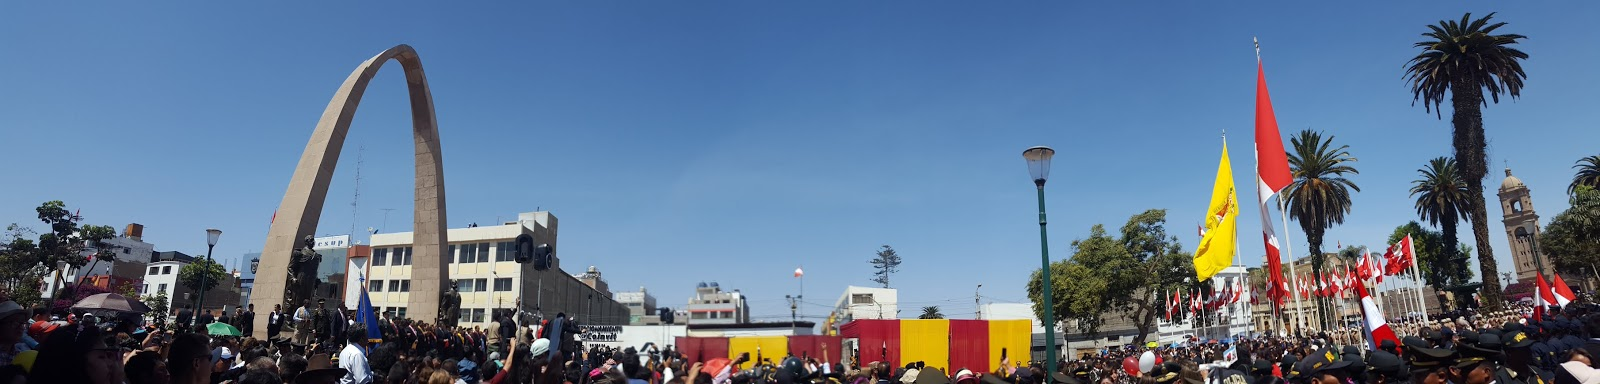 A panorama photo of the main plaza during the anniversary of the city. A huge crowd gathers amidst the famous Tacna arch and many Peruvian flags waving in the wind.